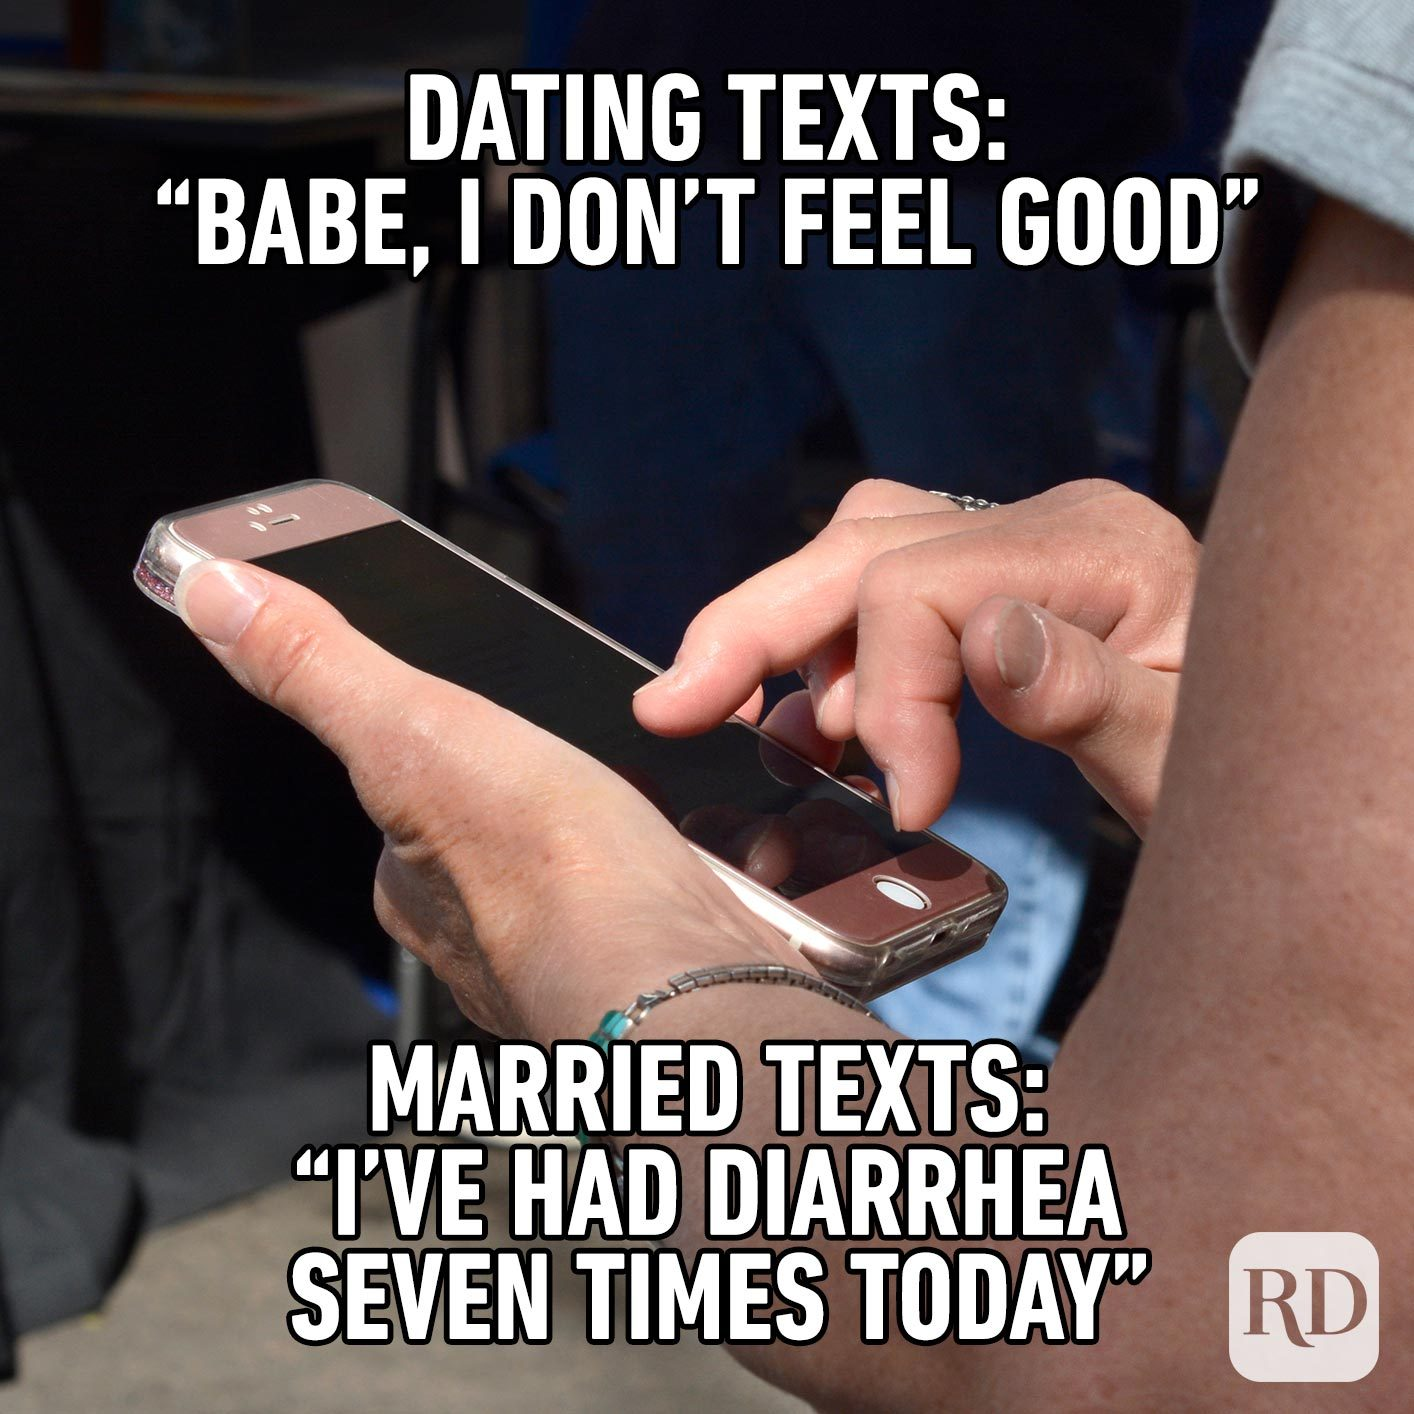 """Person texting. Meme text: Dating texts: """"Babe, I don't feel good"""" Married texts: """"I've had diarrhea seven times today"""""""